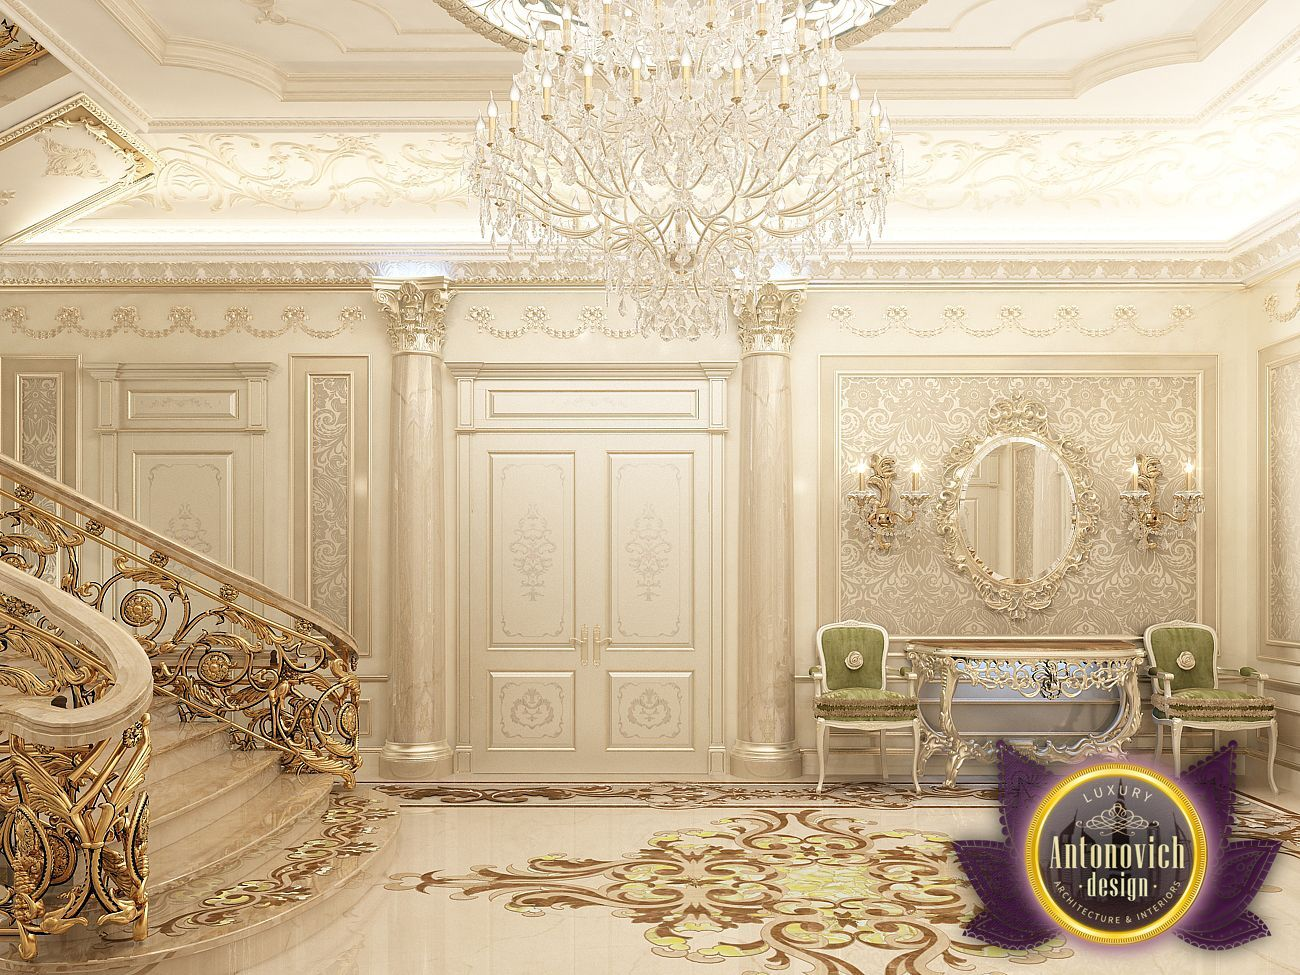 Antonovich design luxury design projects in india dream interior of luxury antonovich design